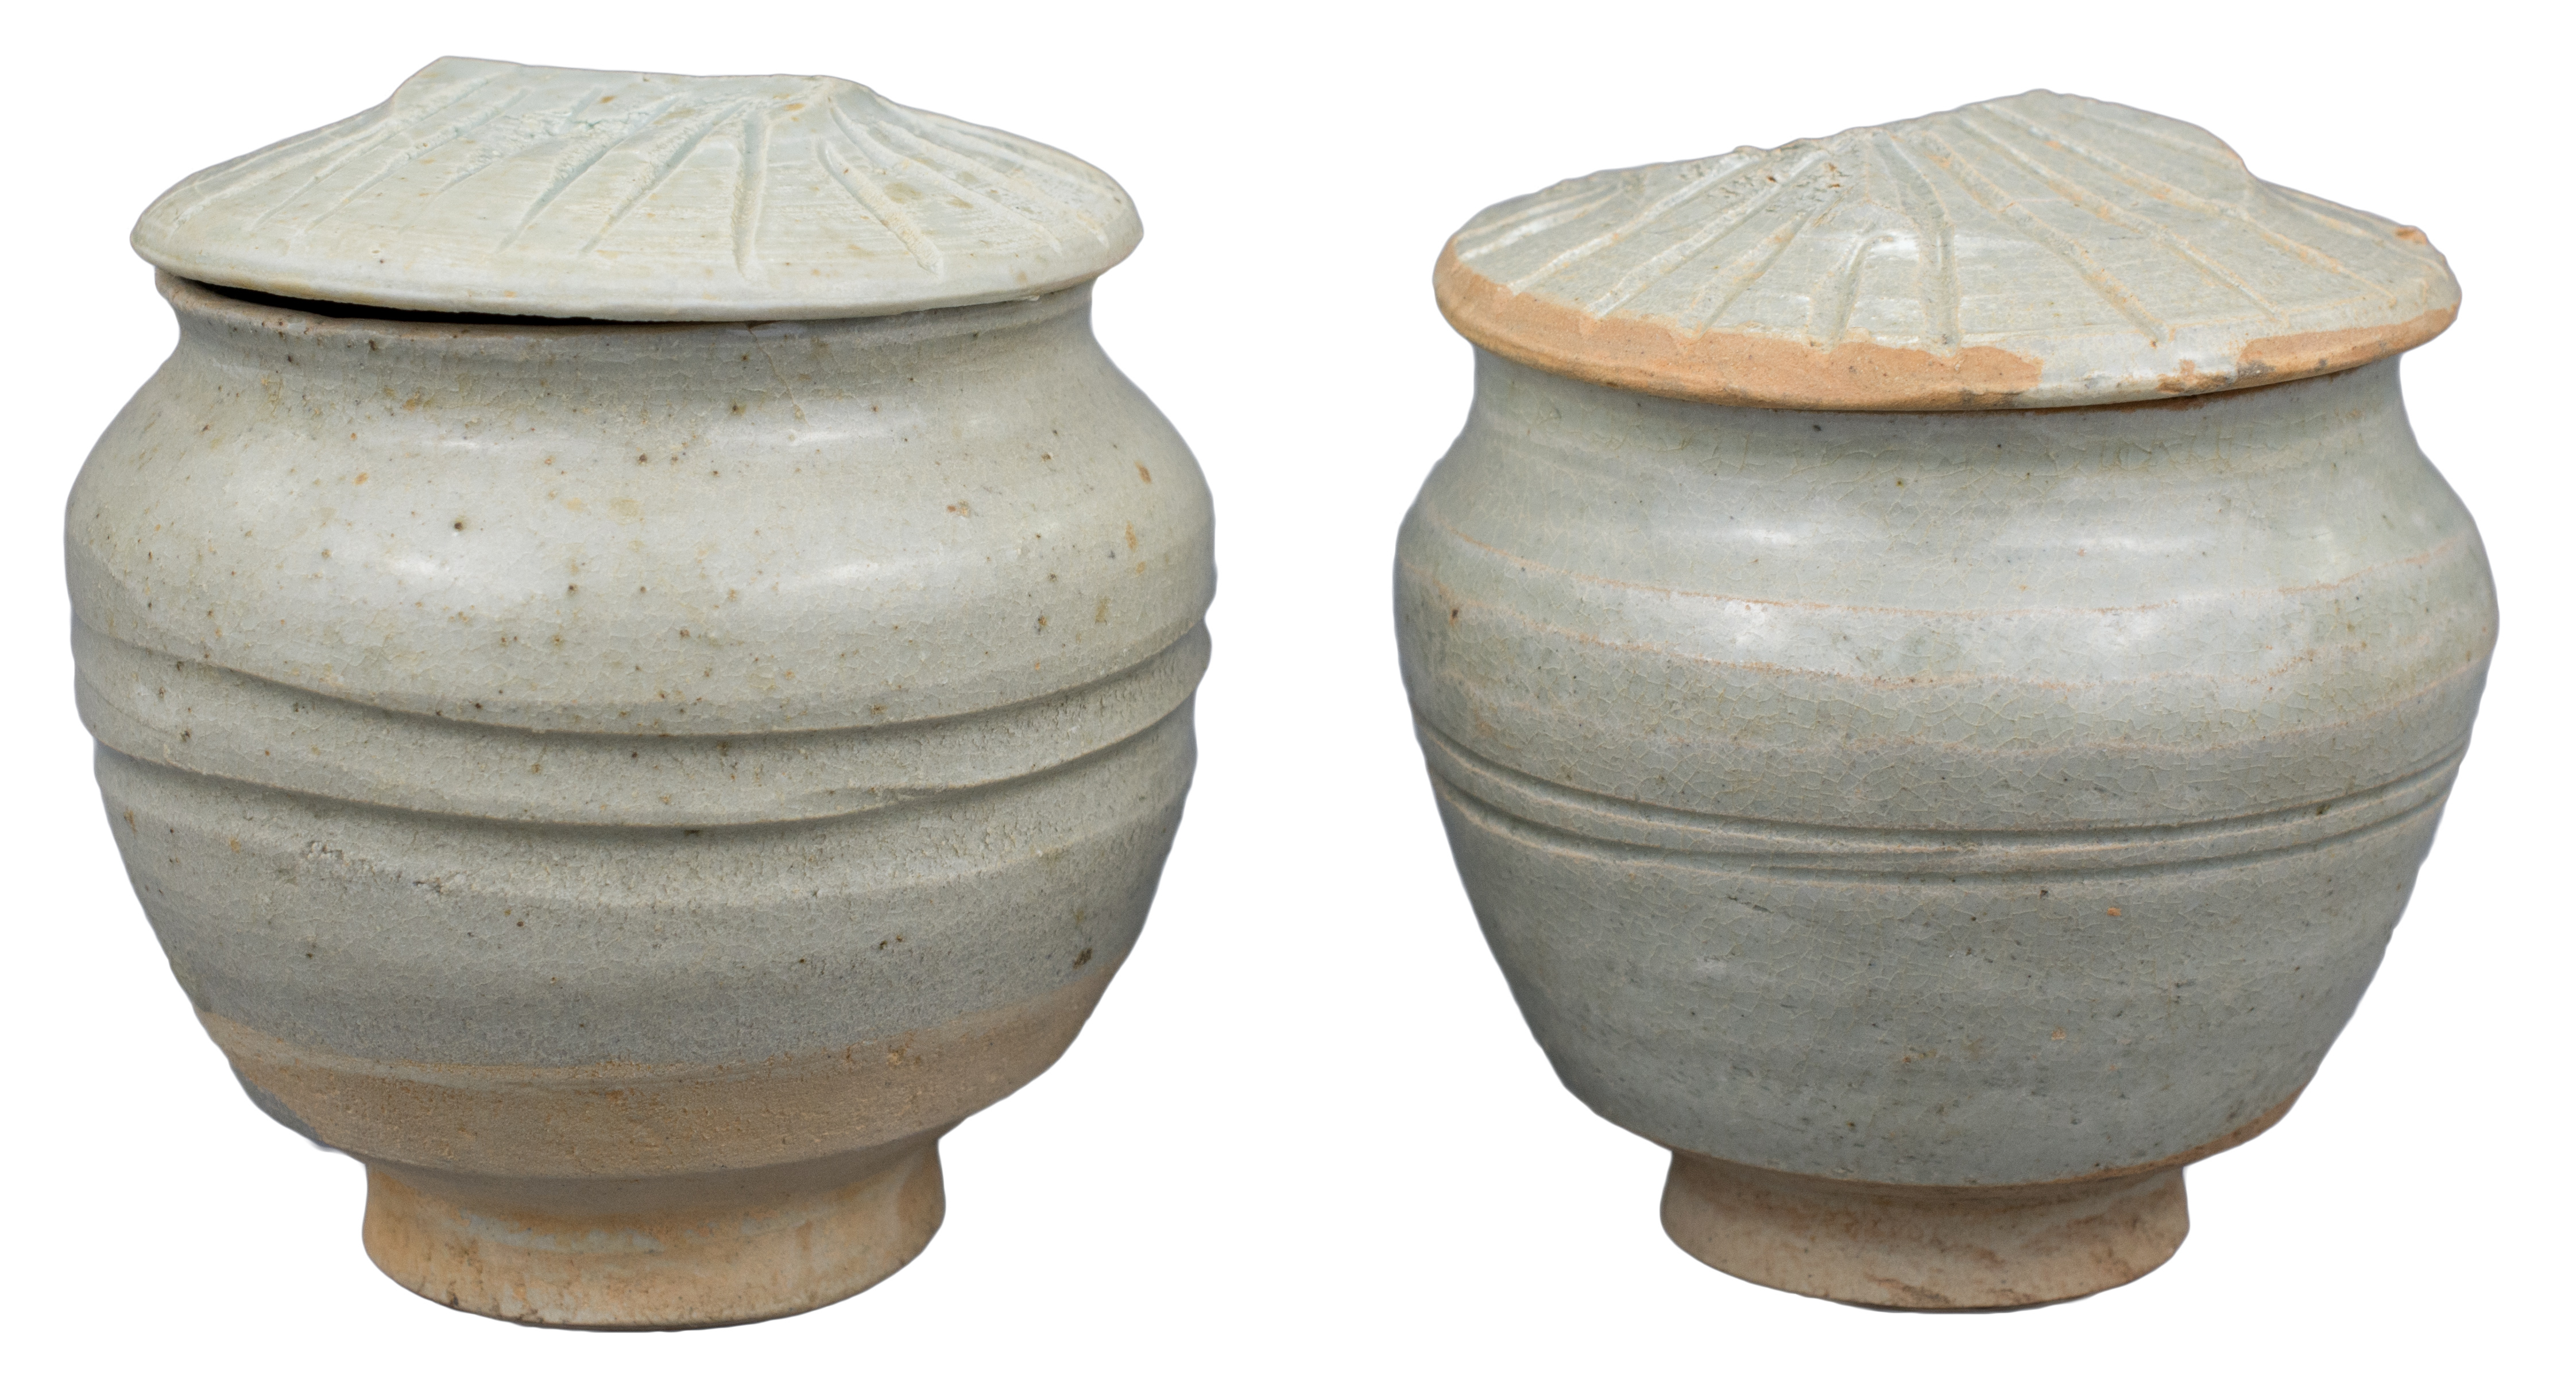 Lot 26 - A Pair of Chinese Yuan Dynasty Qingbai Porcelain Covered Jars